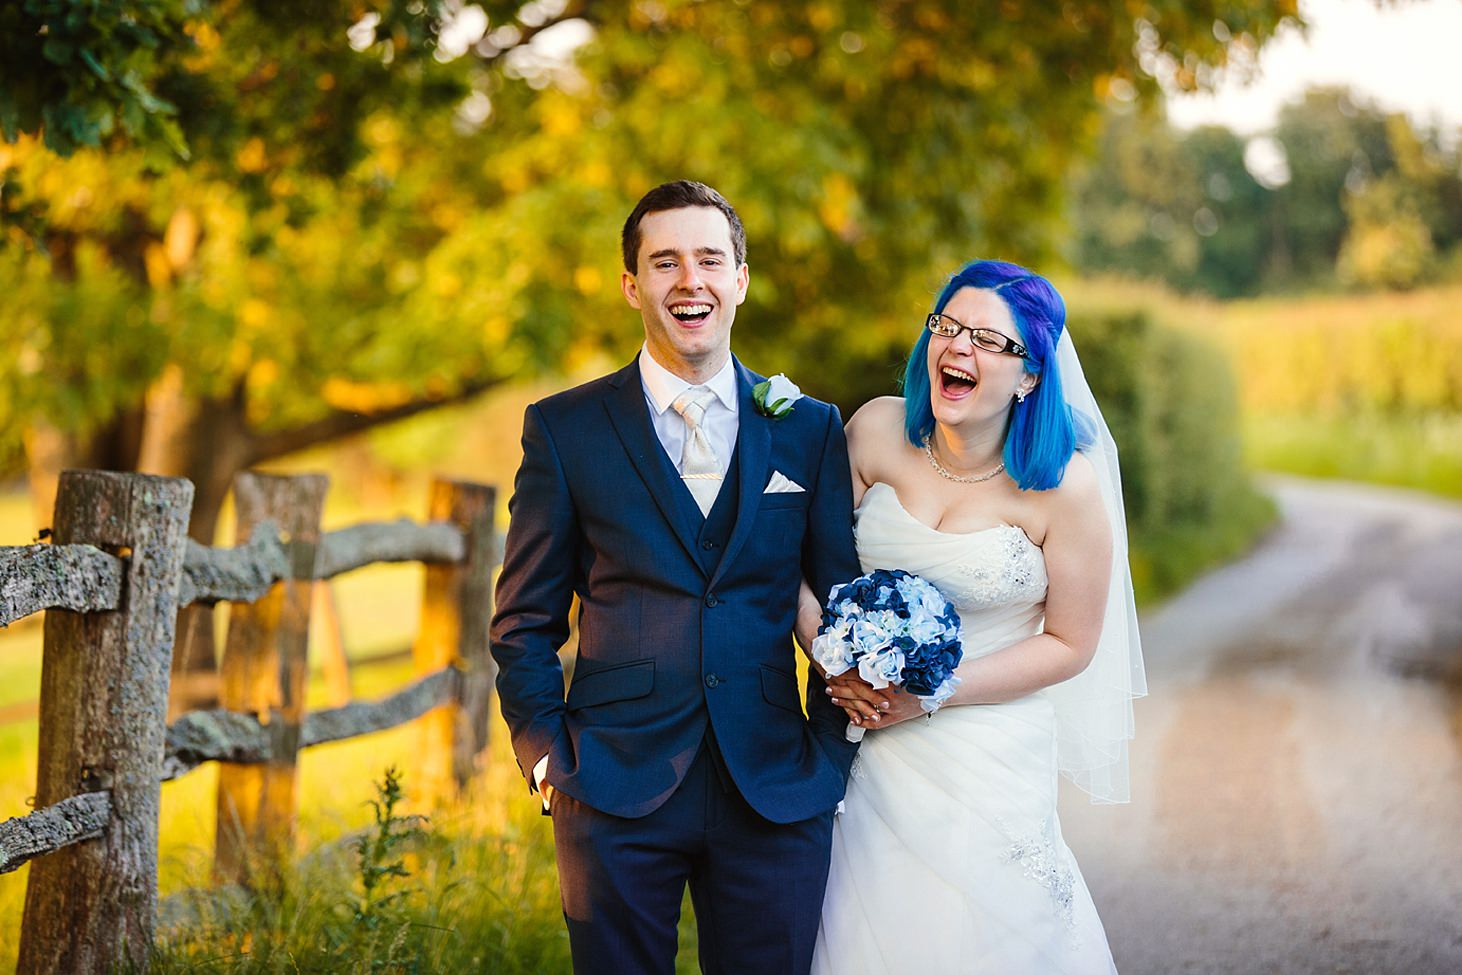 gate street barn wedding photography bride and groom laughing